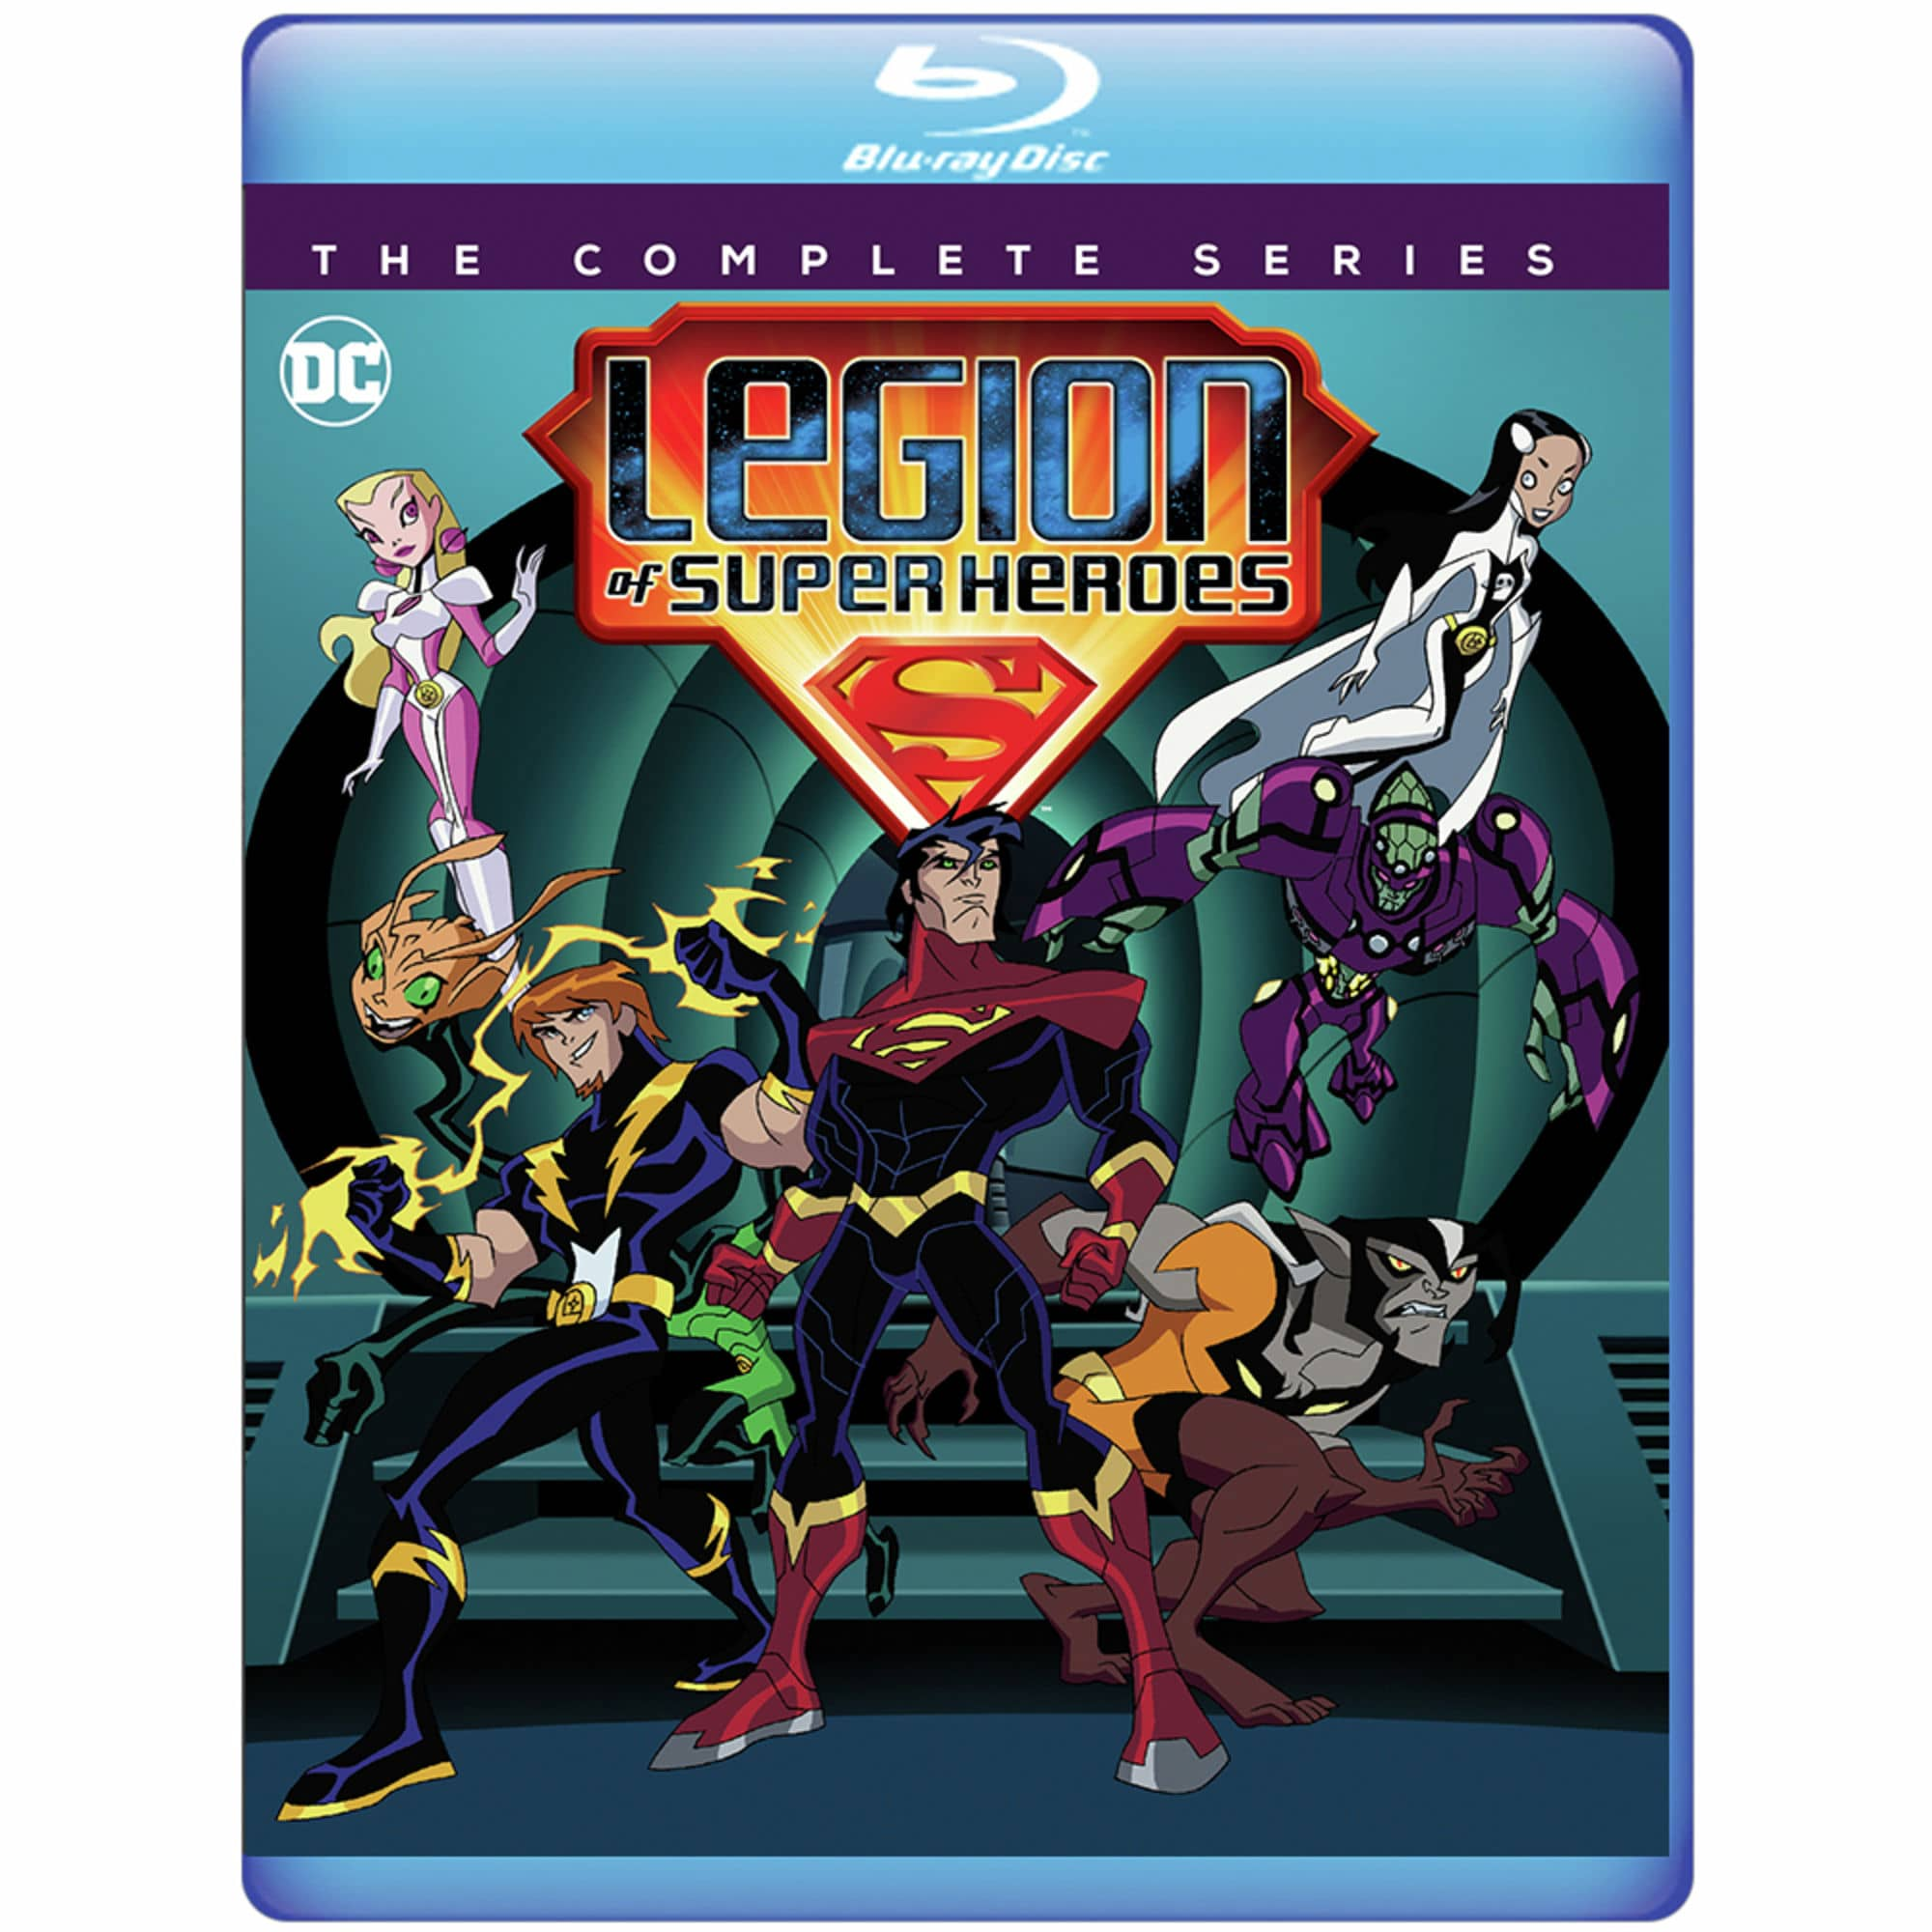 LEGION OF SUPERHEROES Bluray